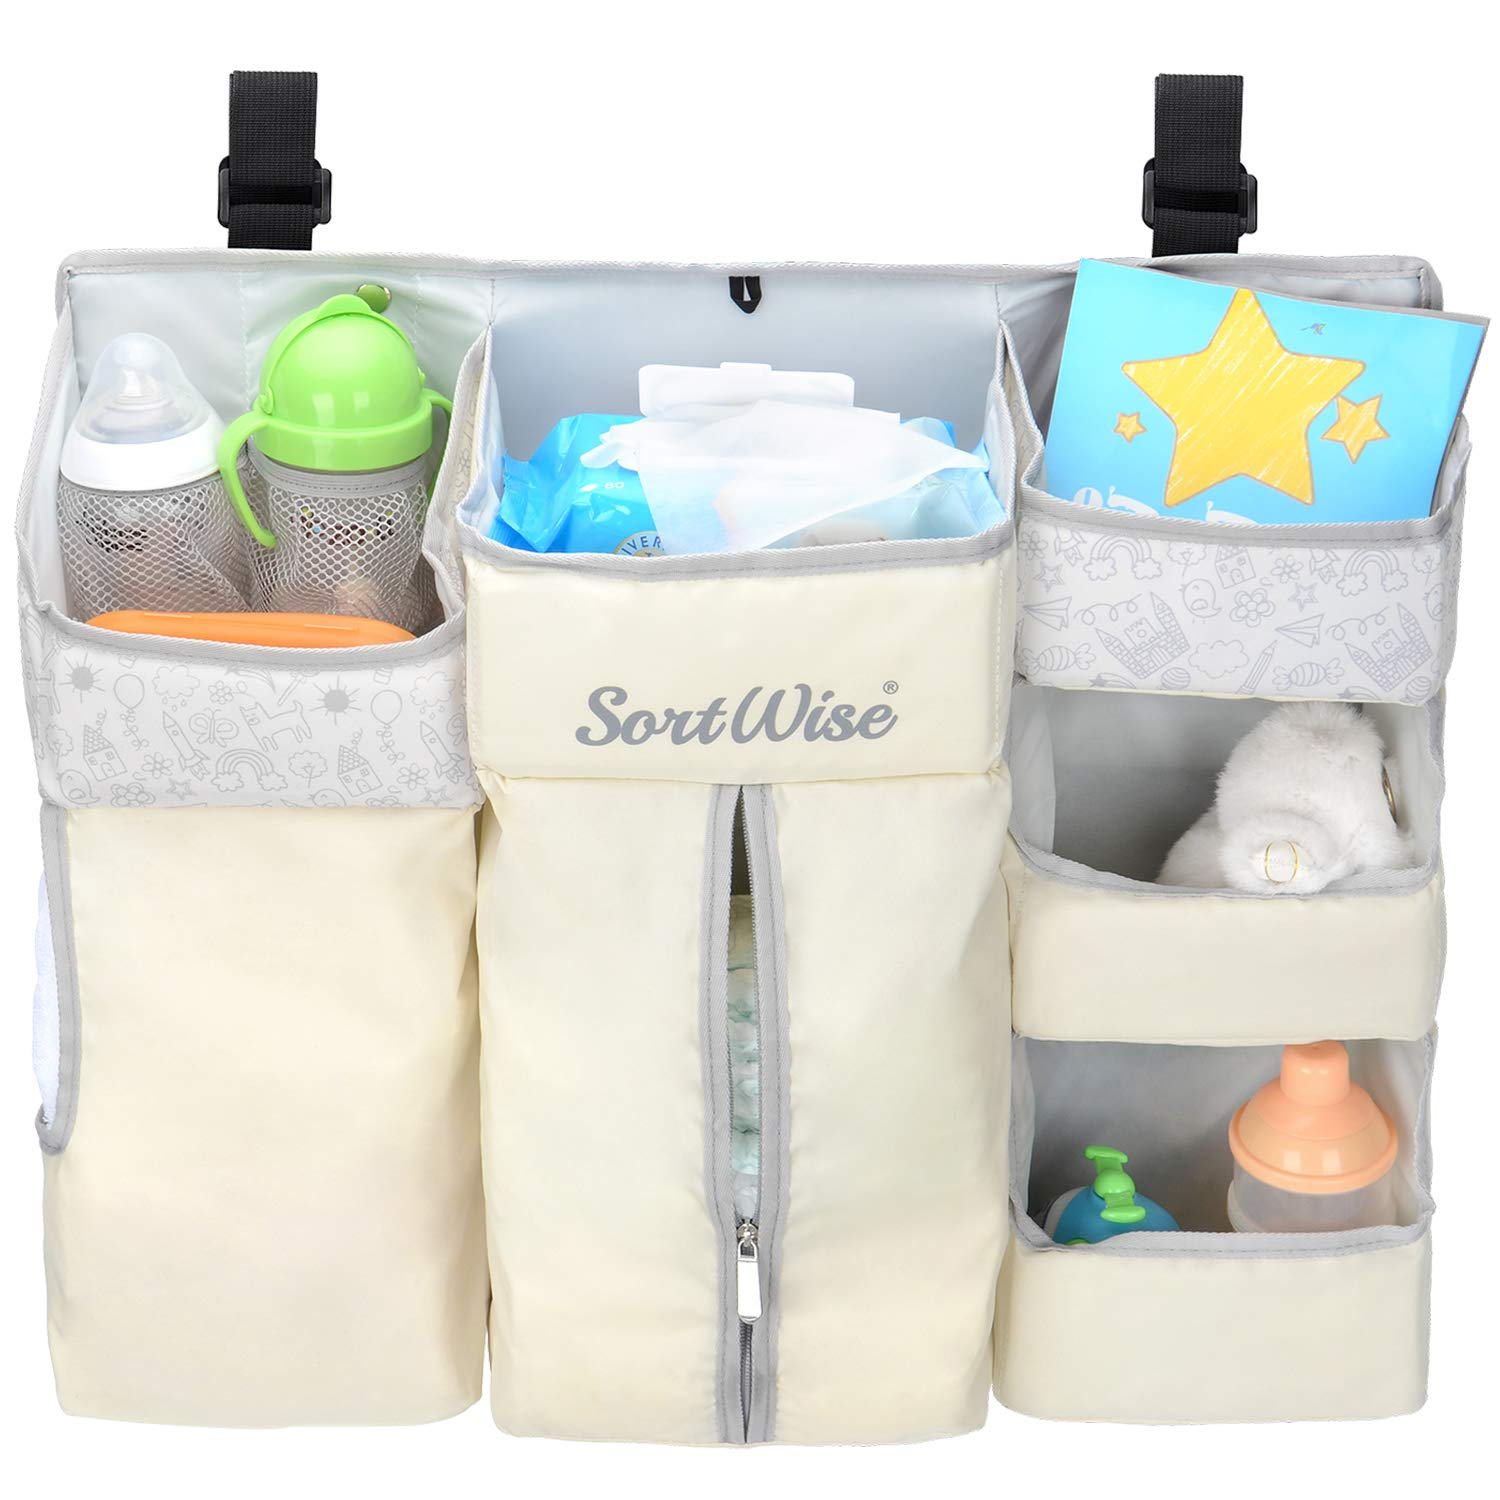 SortWise Nursery Organizer Baby Diaper Caddy | Hanging Diaper Organization Storage for Baby Diapers, Toys, Bottles, Wet Wipes | Hang on Crib, Changing Table, Door Or Wall